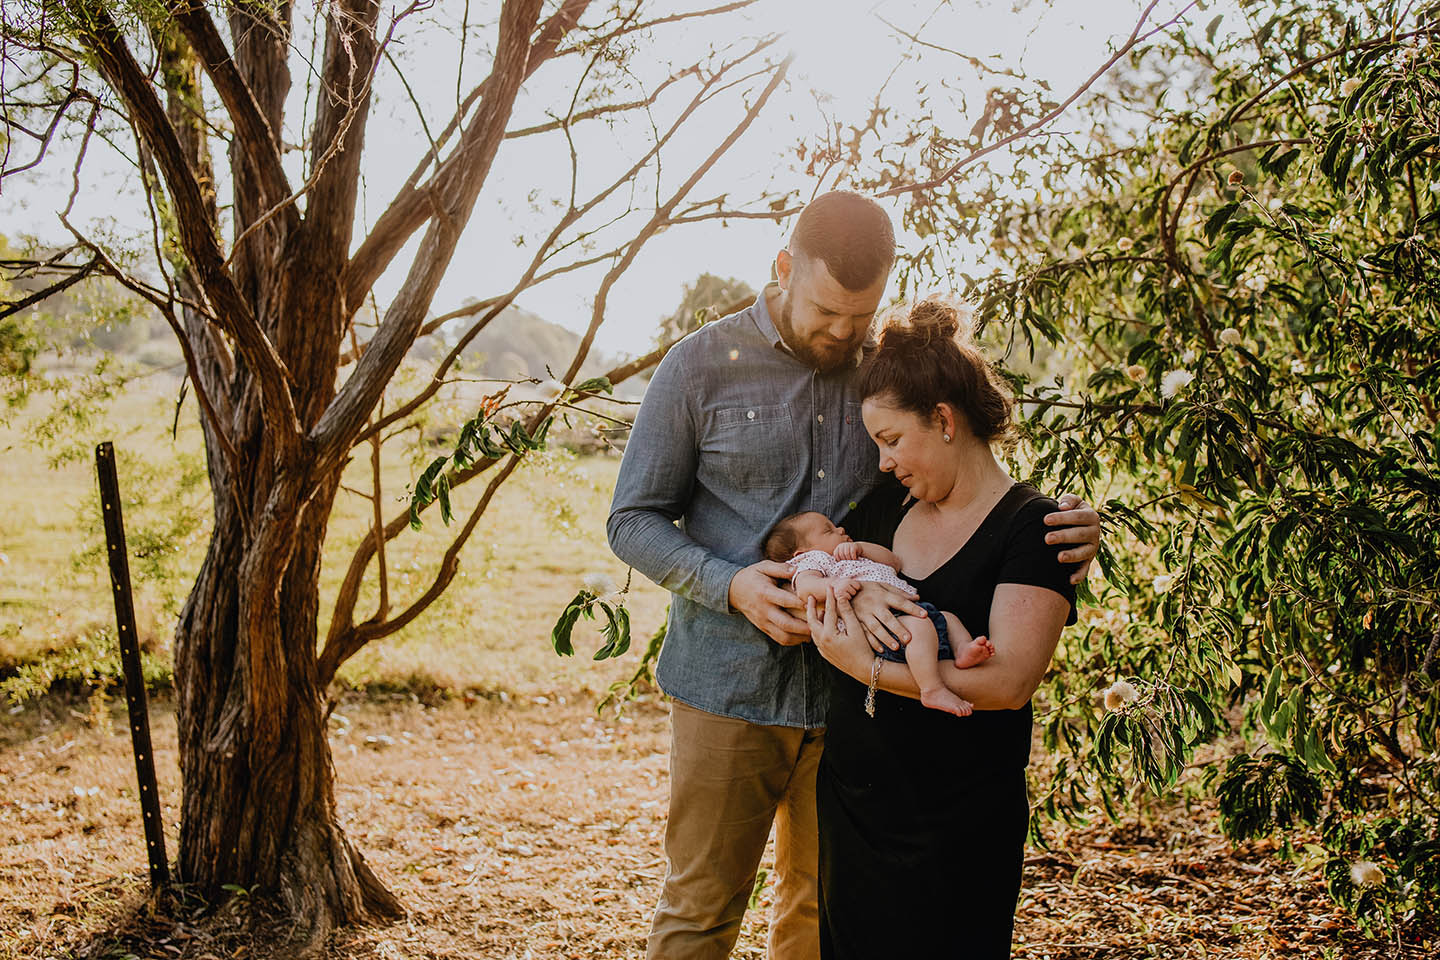 Newborn, family photography, afternoon light, baby, loving parents, Alice Payne photography